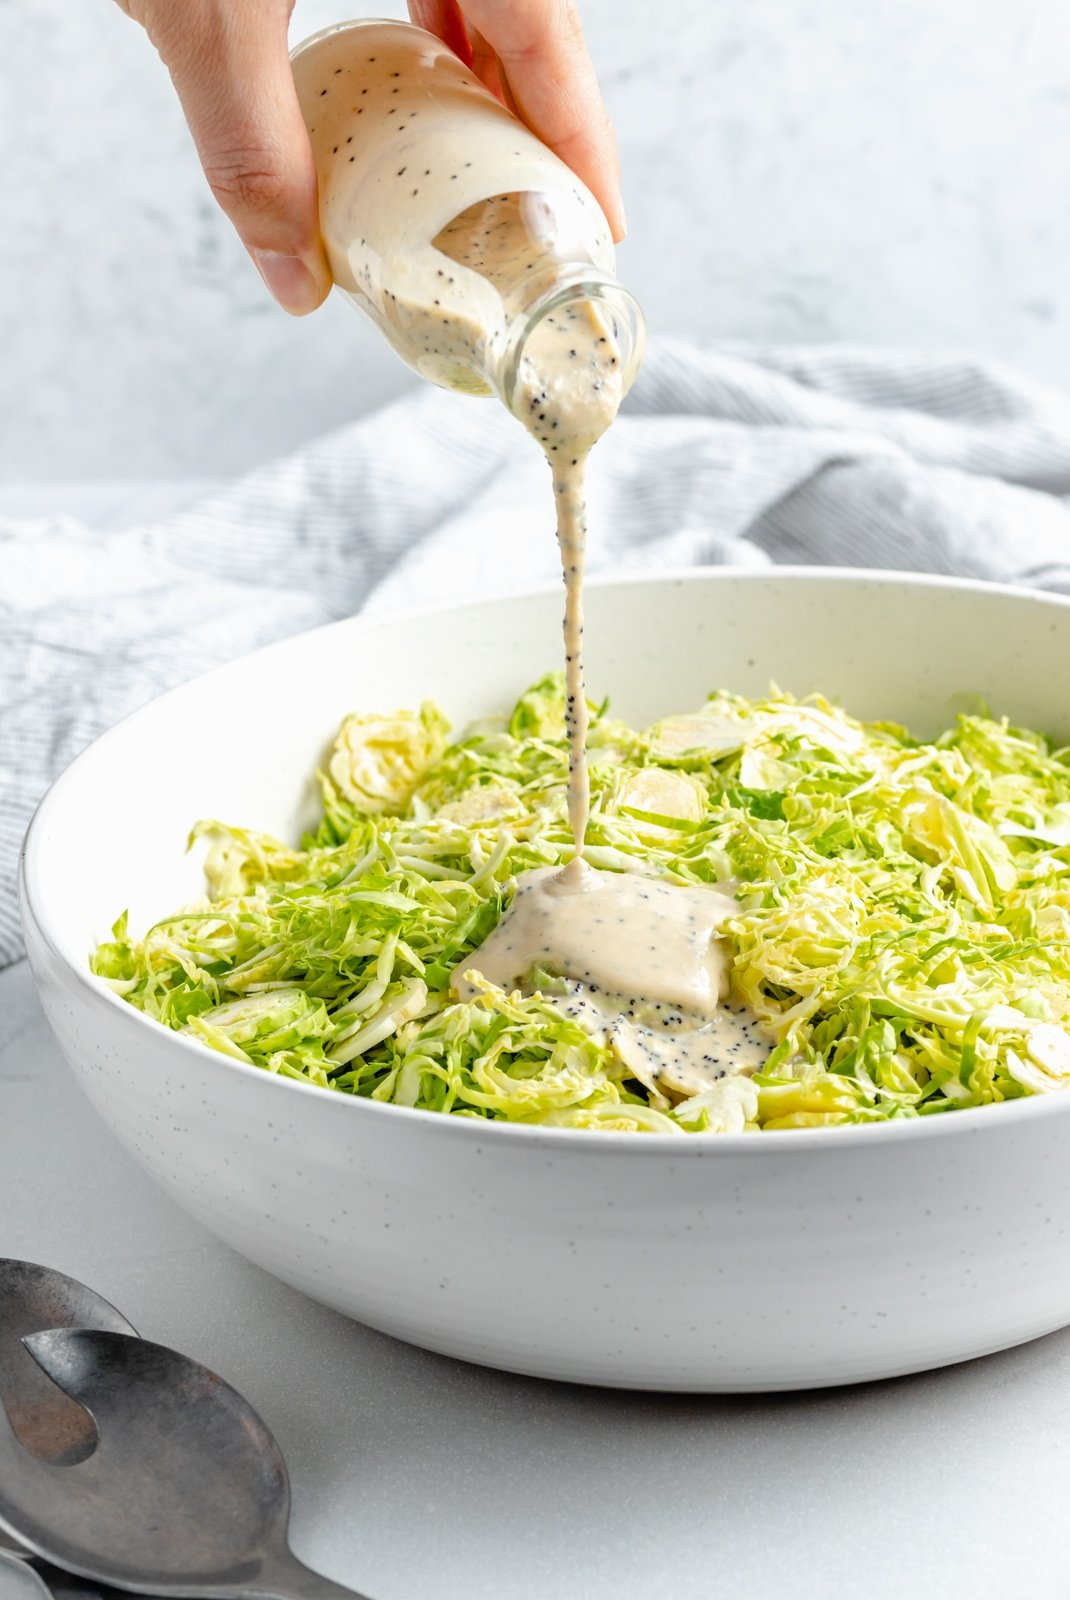 pouring tahini poppy seed dressing into a bowl of brussels sprouts